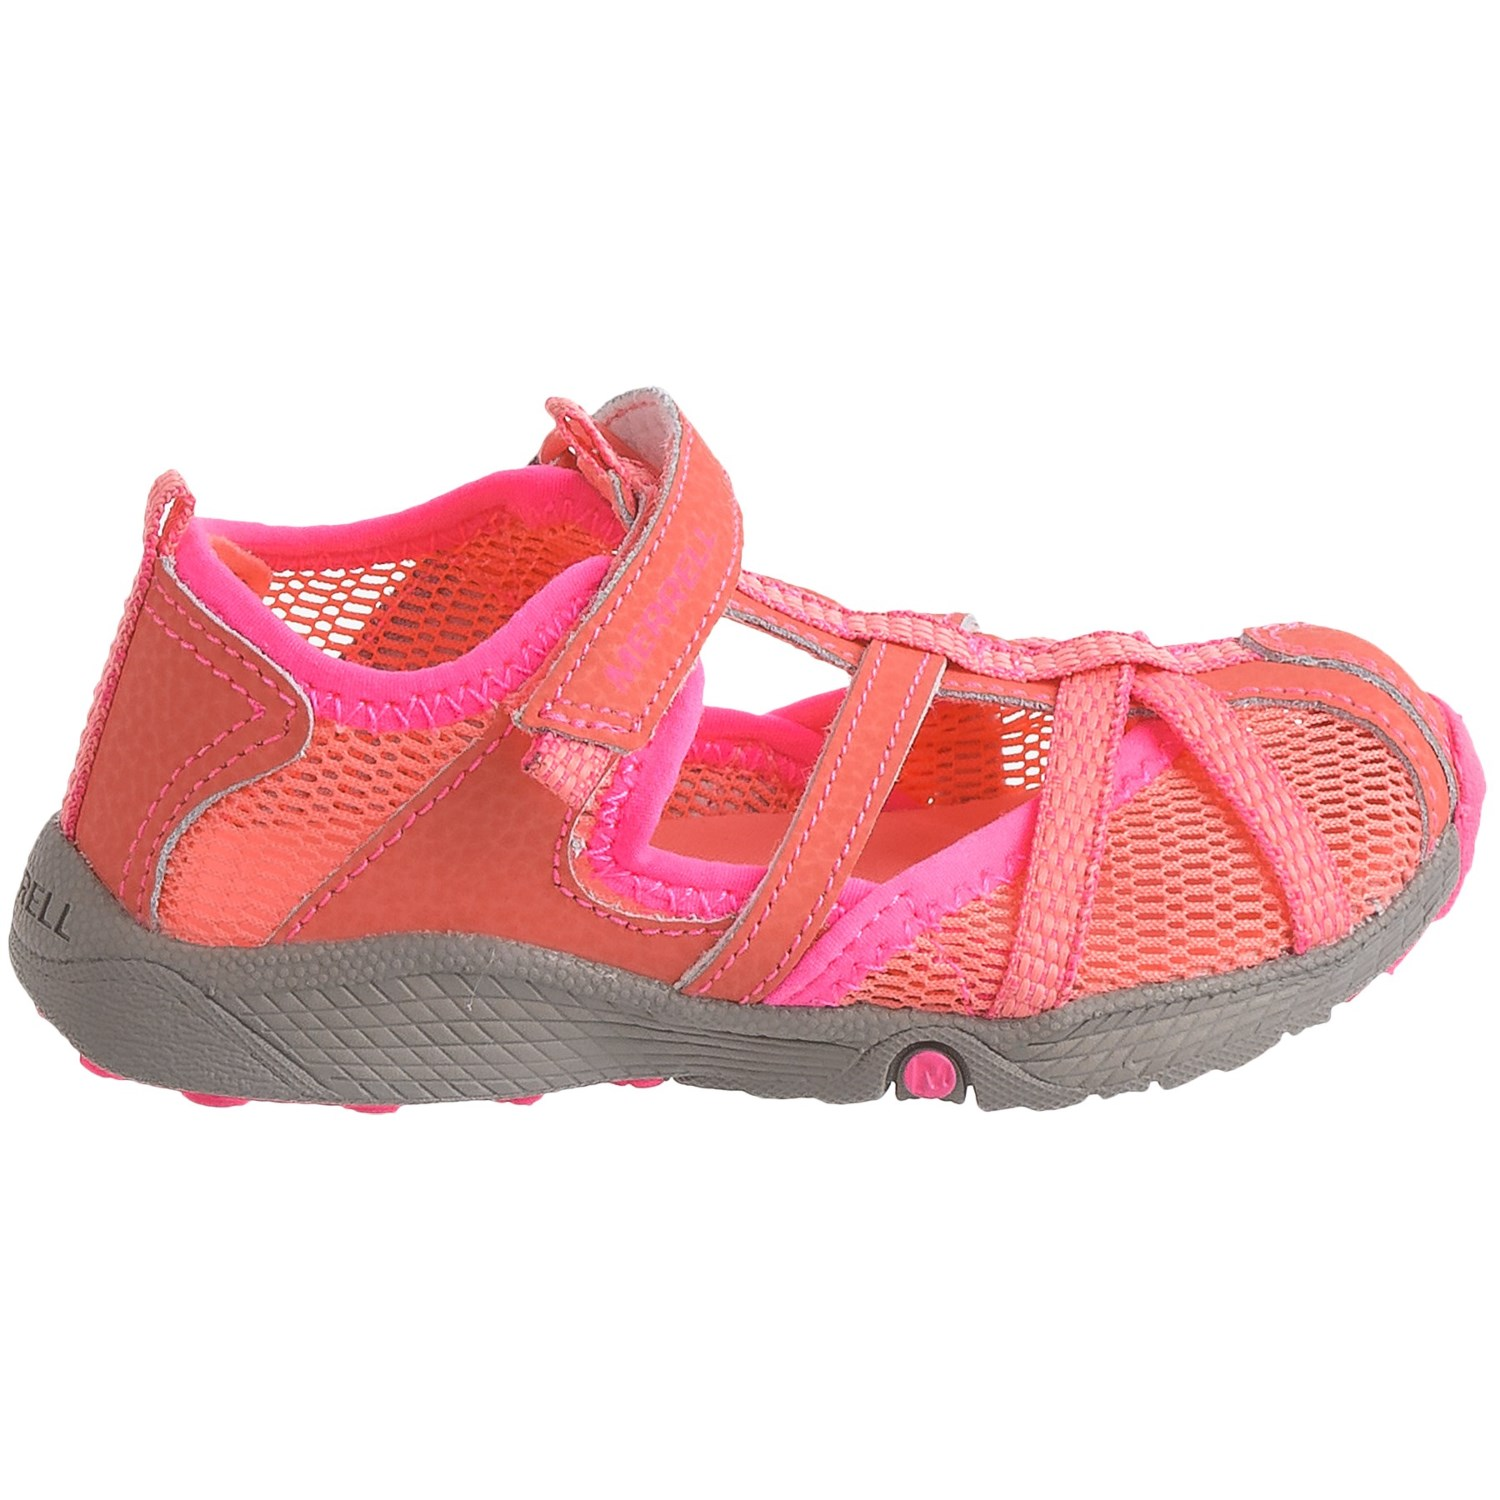 8560446d344 Merrell Hydro Monarch Junior Water Sandals - Leather and Mesh (For Little  and Big Girls)